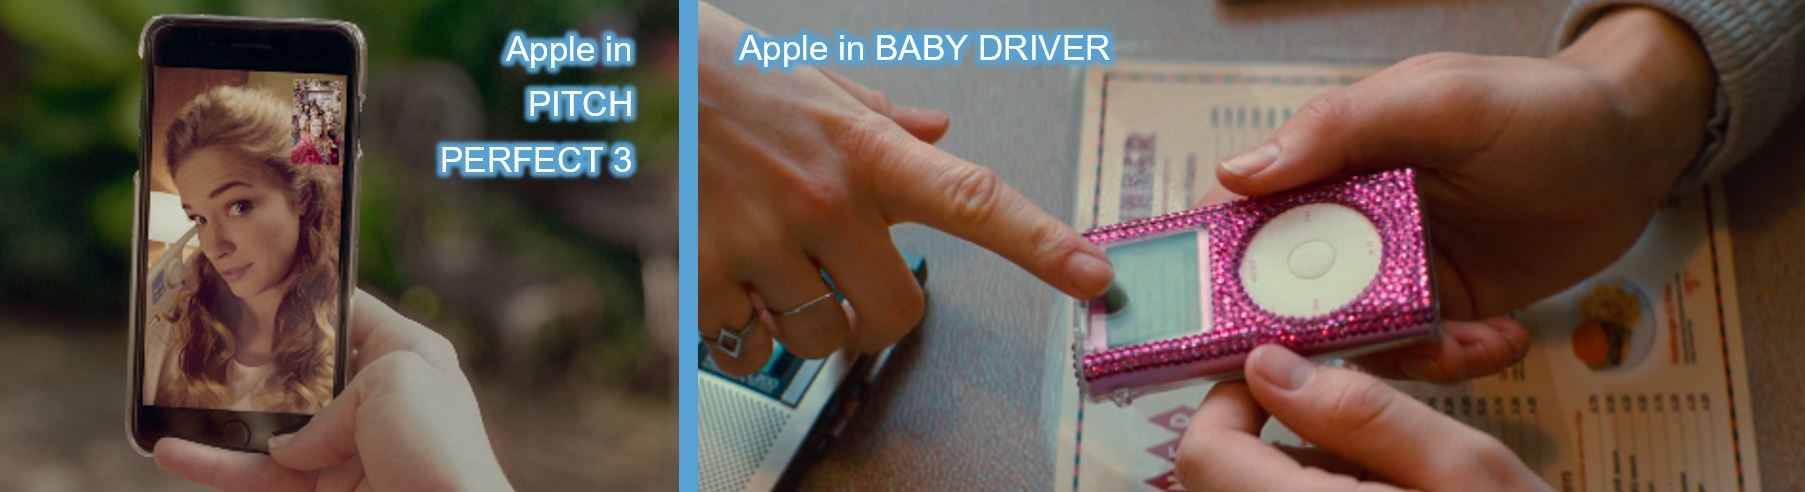 concave brand tracking product placement brand mentions Apple pitch perfect 3 baby driver